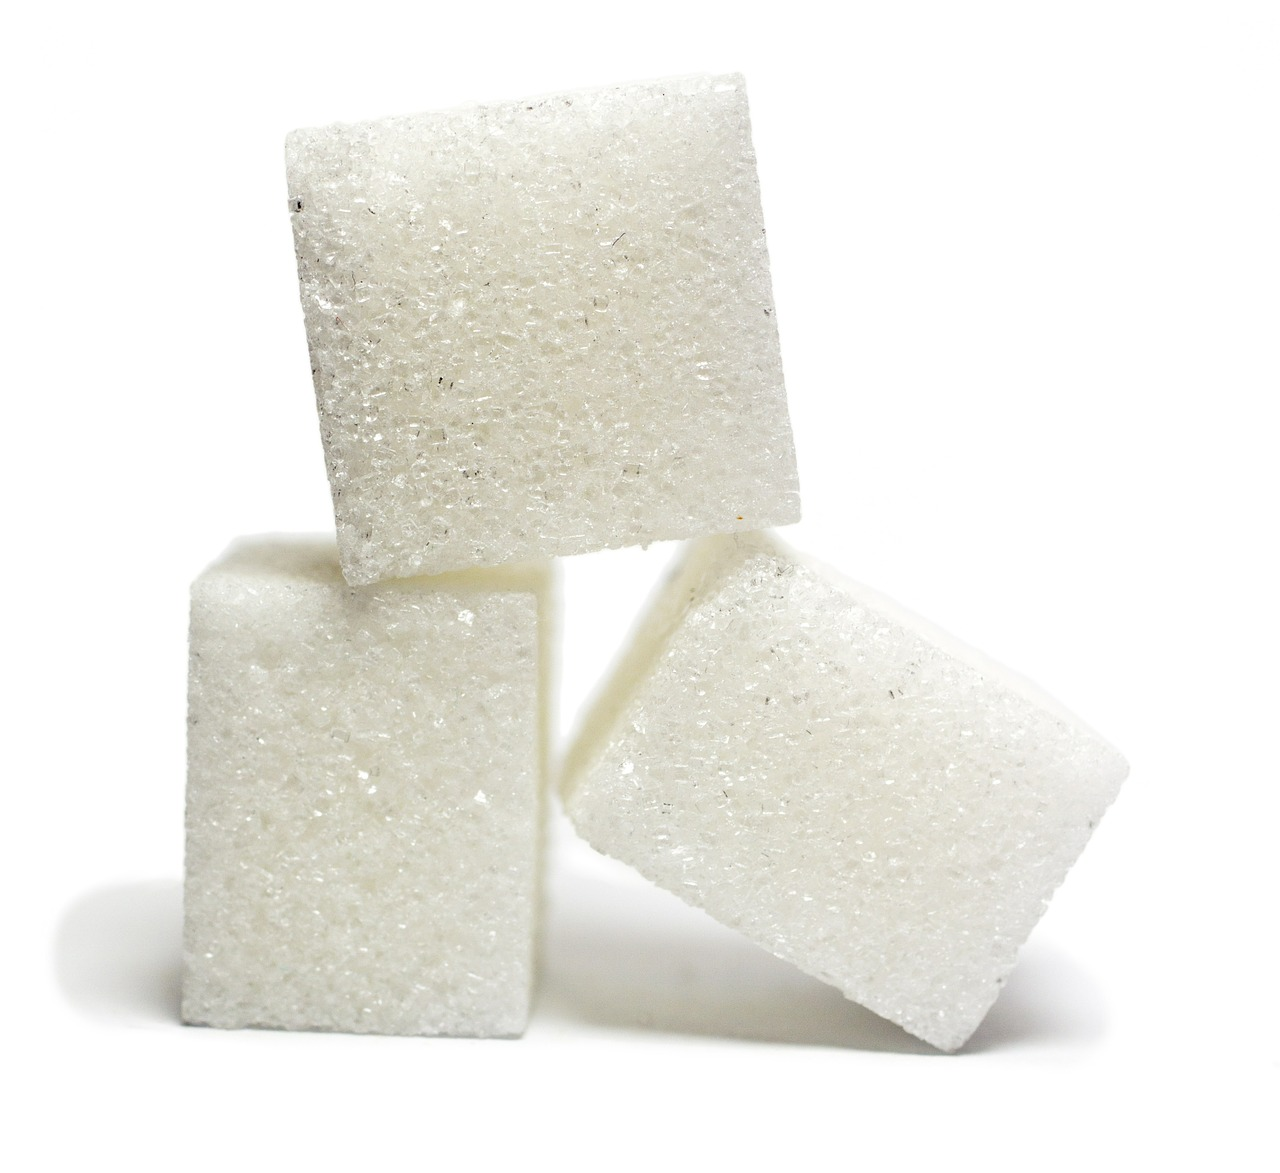 Sugar Alcohols Are New Sweeteners on The Market